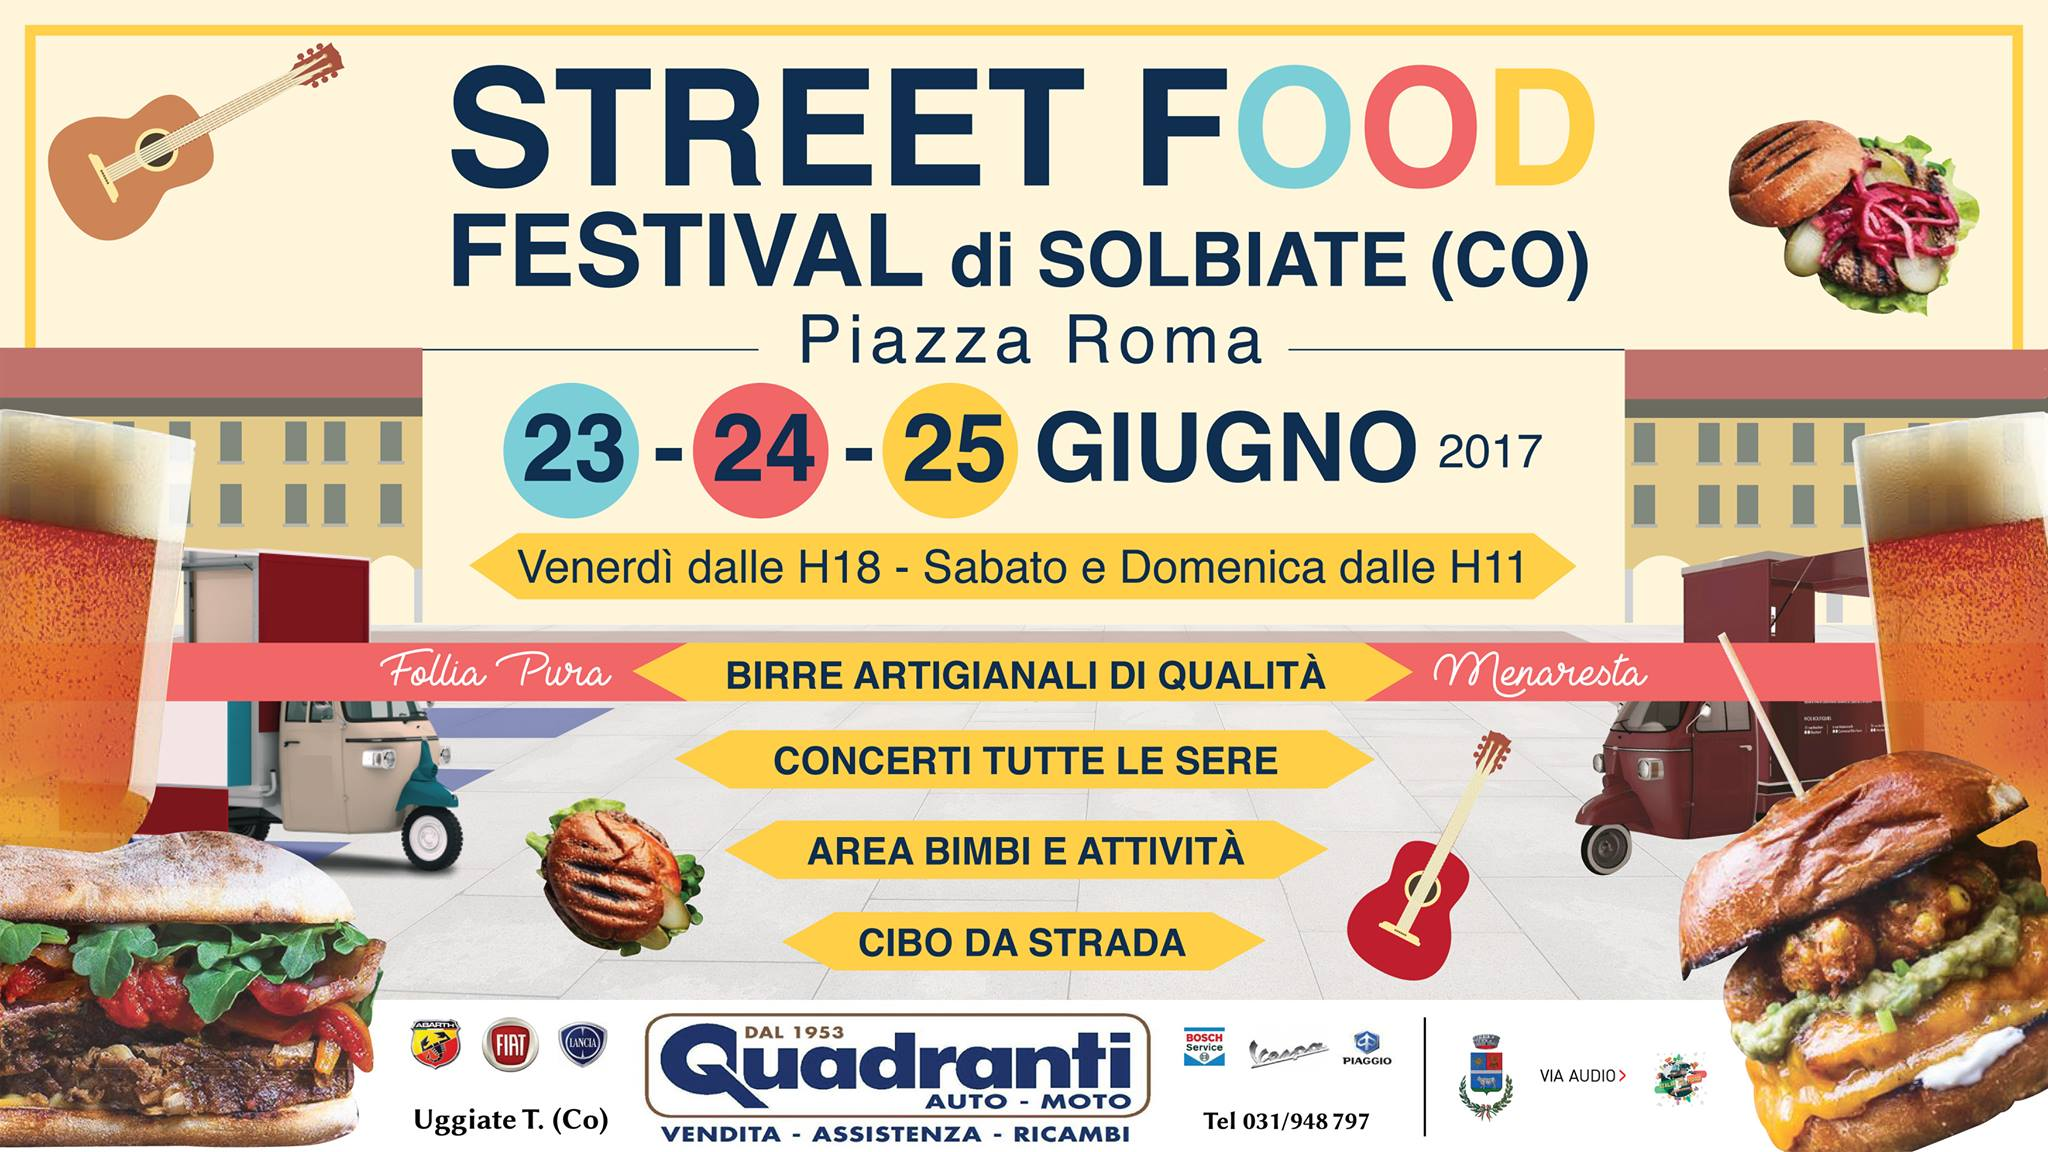 Street Food Festival di Solbiate